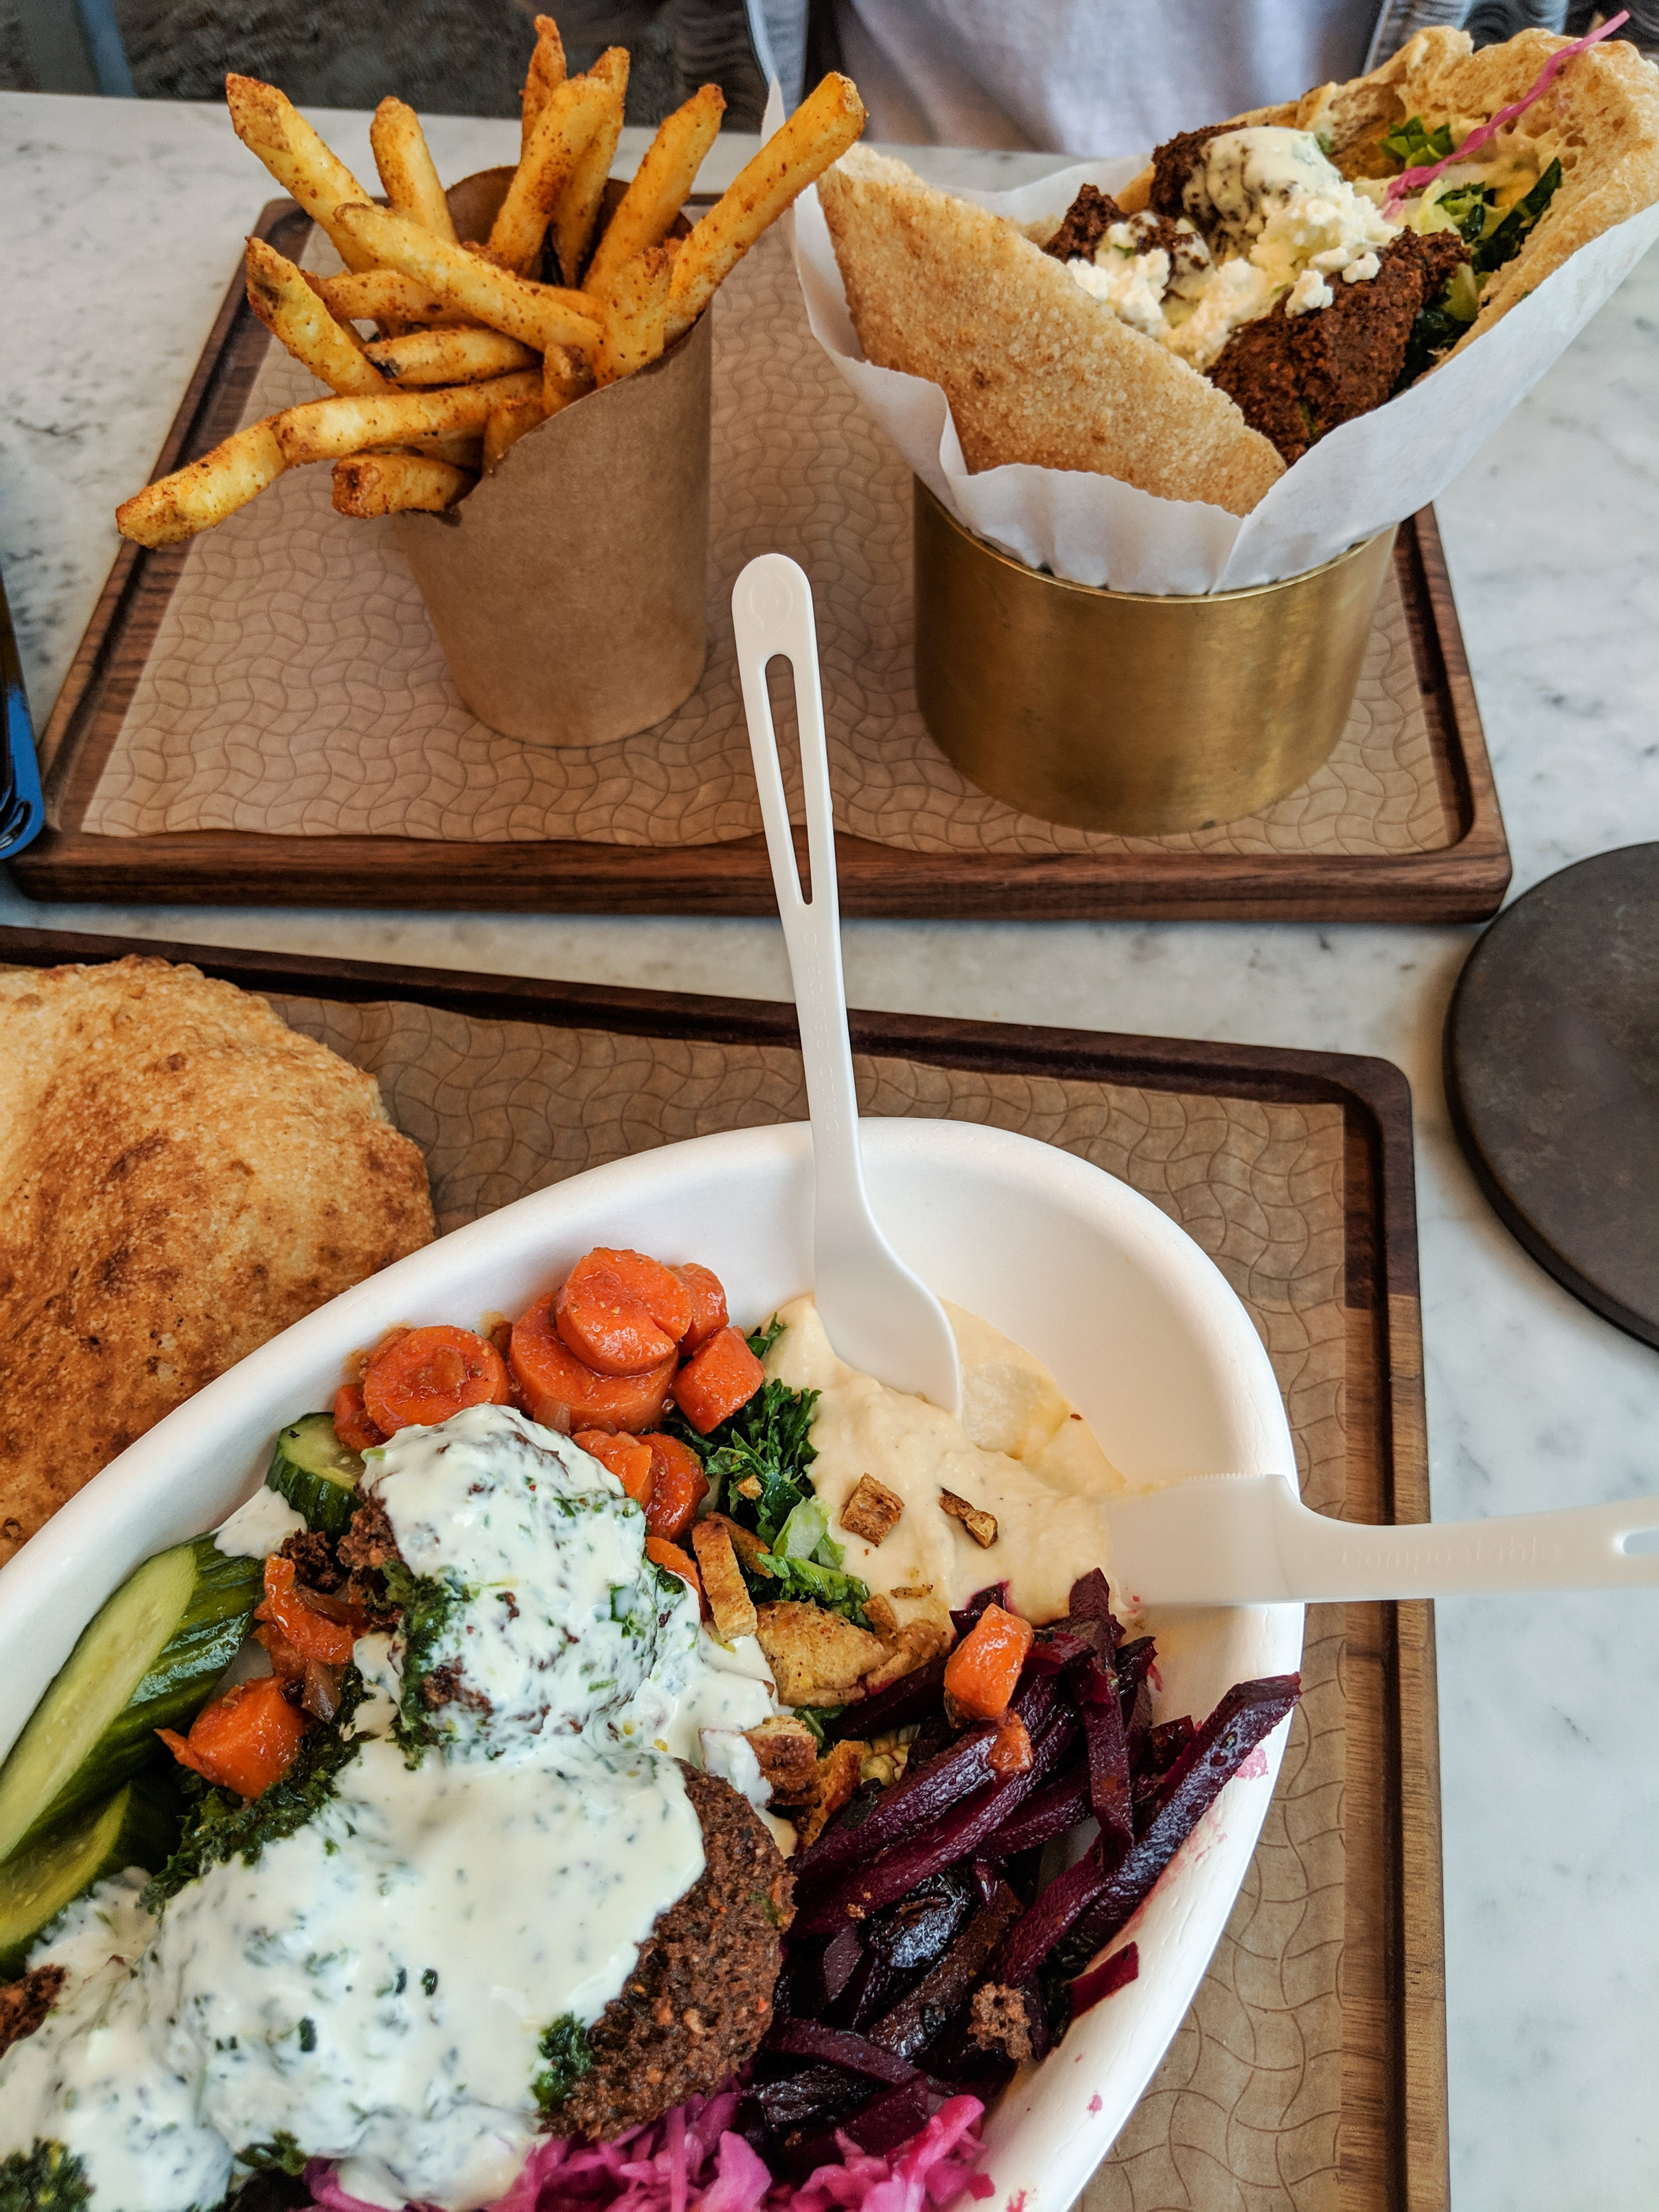 Falafel Salad with carrots, hummus, baba and pickles from Brassica. Falafel Sandwich and fries with special sauce.